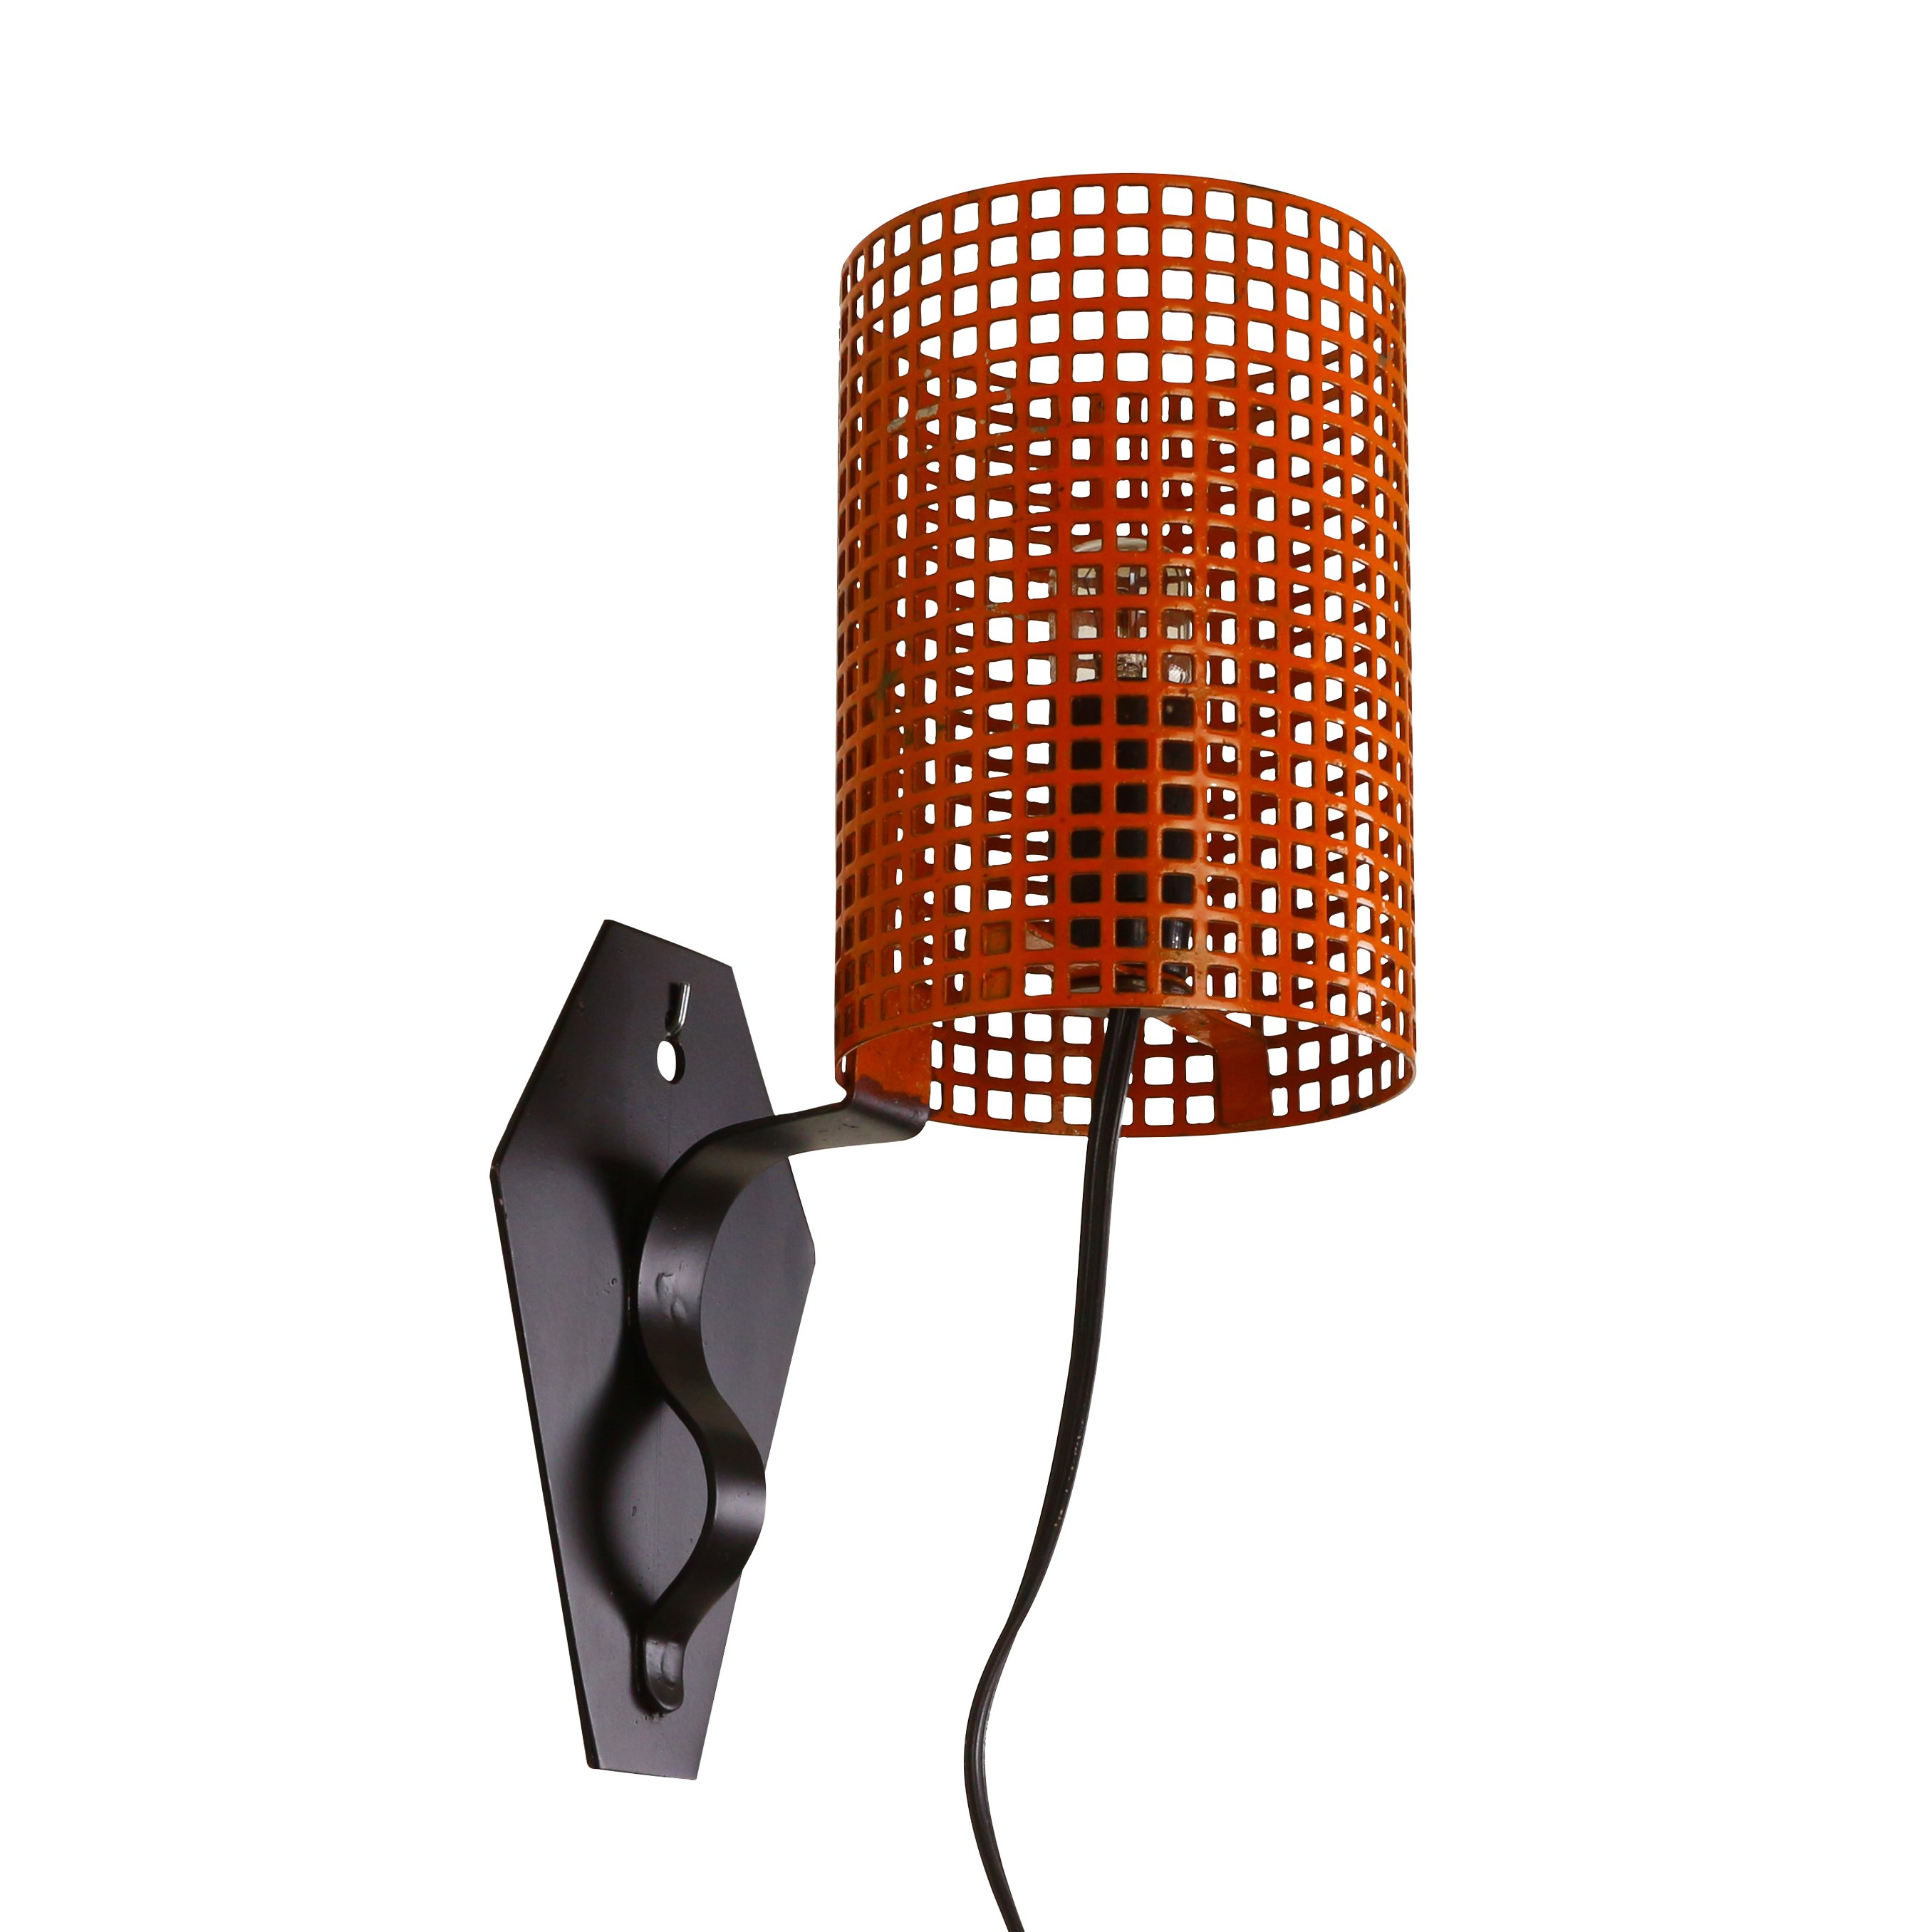 Dark Metal Wall Lights : Orange and black metal wall light with a perforated shade, 1960s #1061